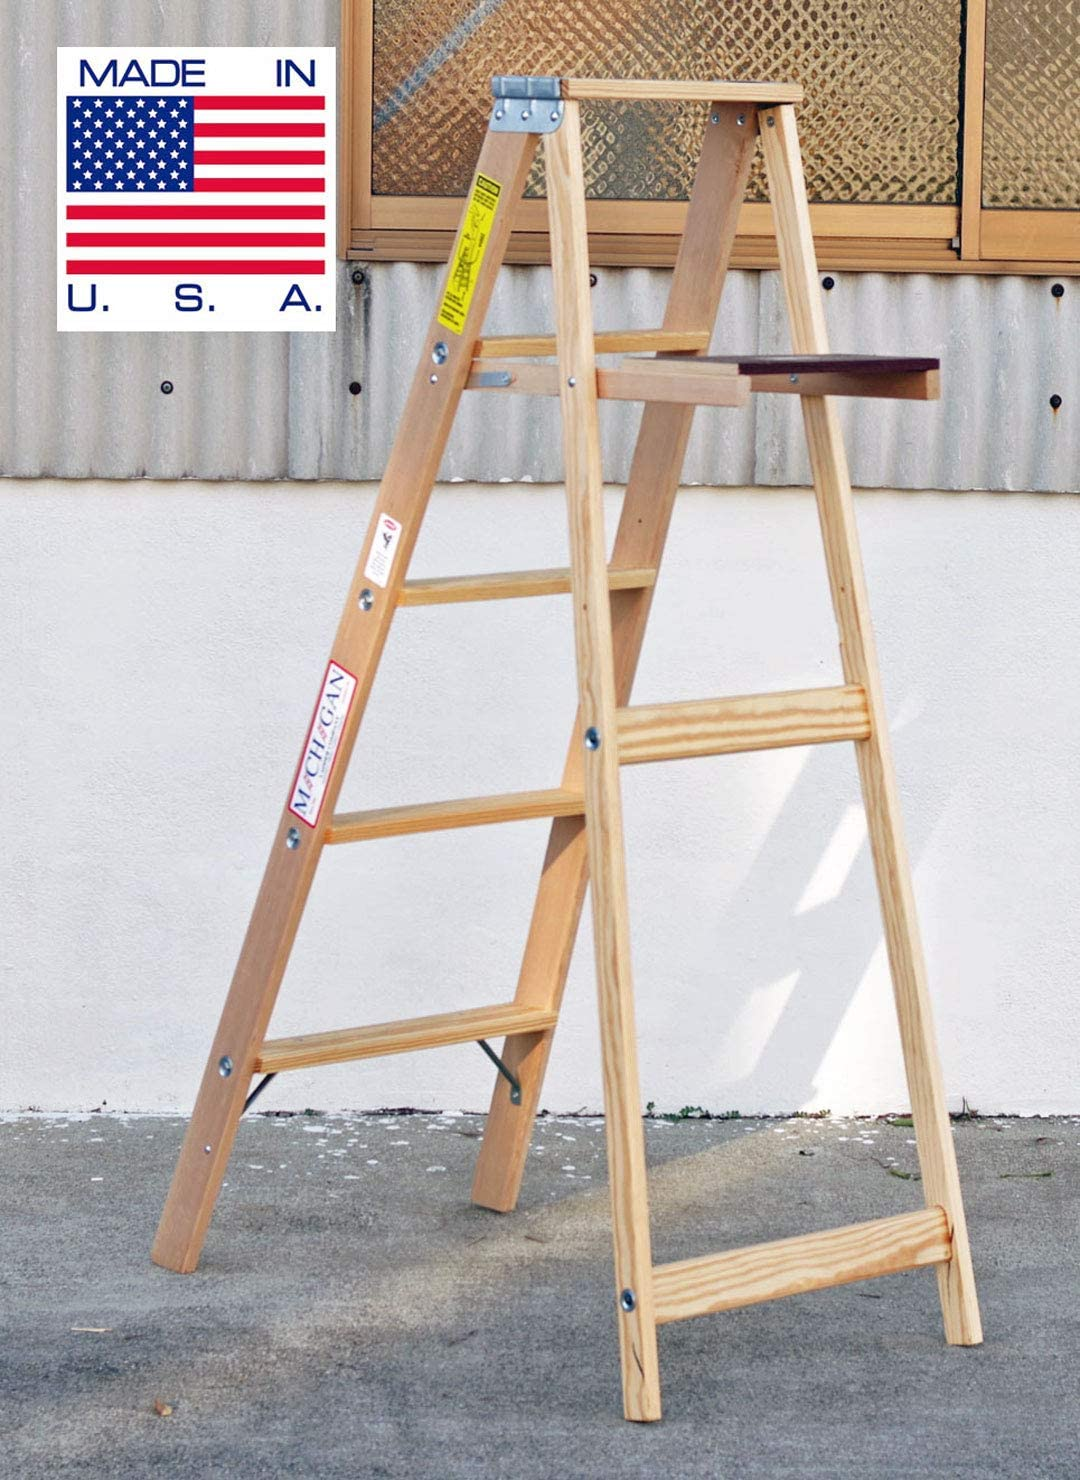 5 Ft Wood Step Ladder With 200 Lb Load Capacity Step Ladder Amazon Com